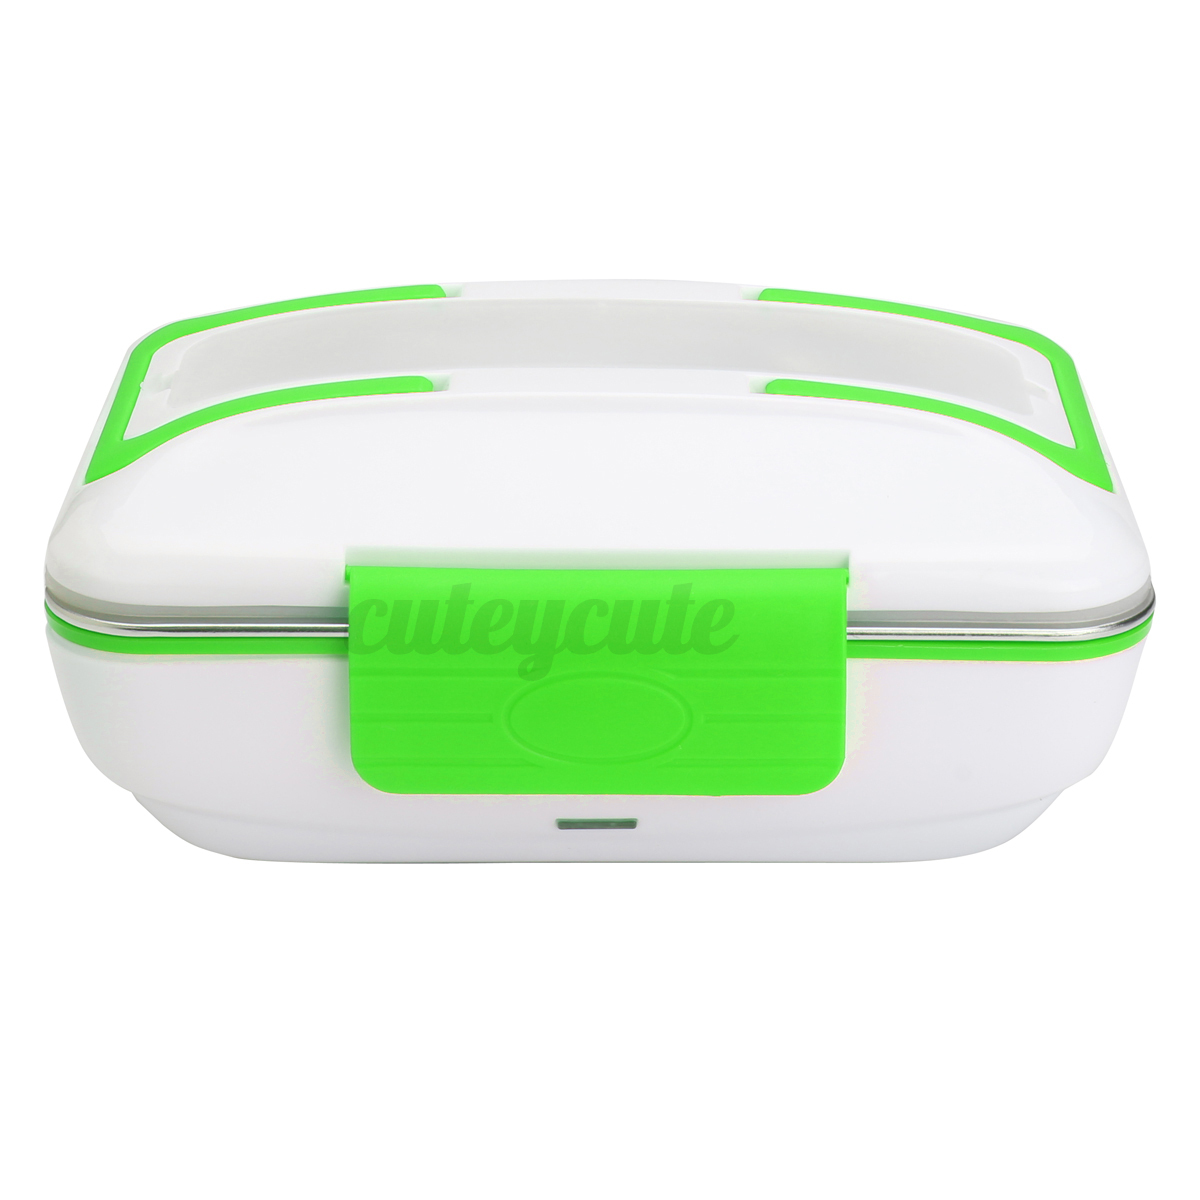 110V Portable Electric Heating Lunch Box Food Warmer Heater Container /& LunchBox